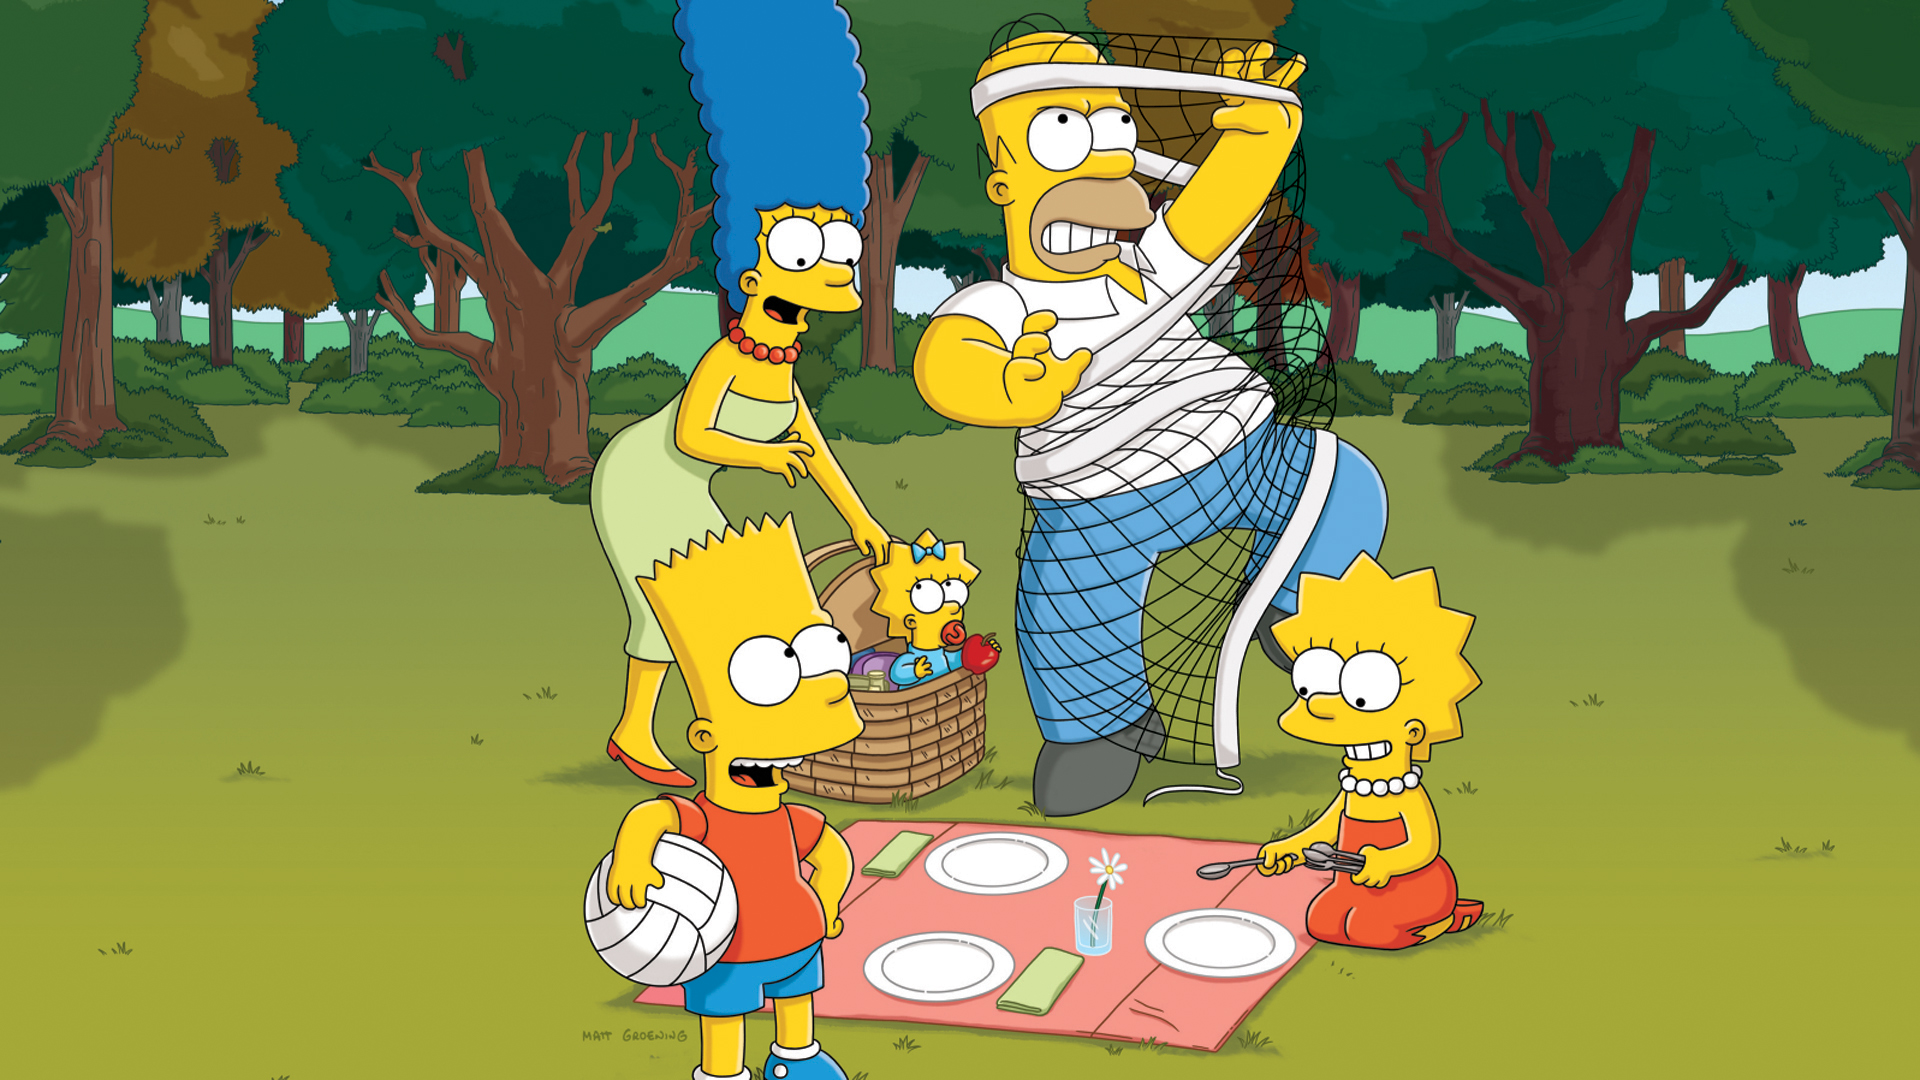 The Simpson Wallpaper Image Picture 9997 Wallpaper